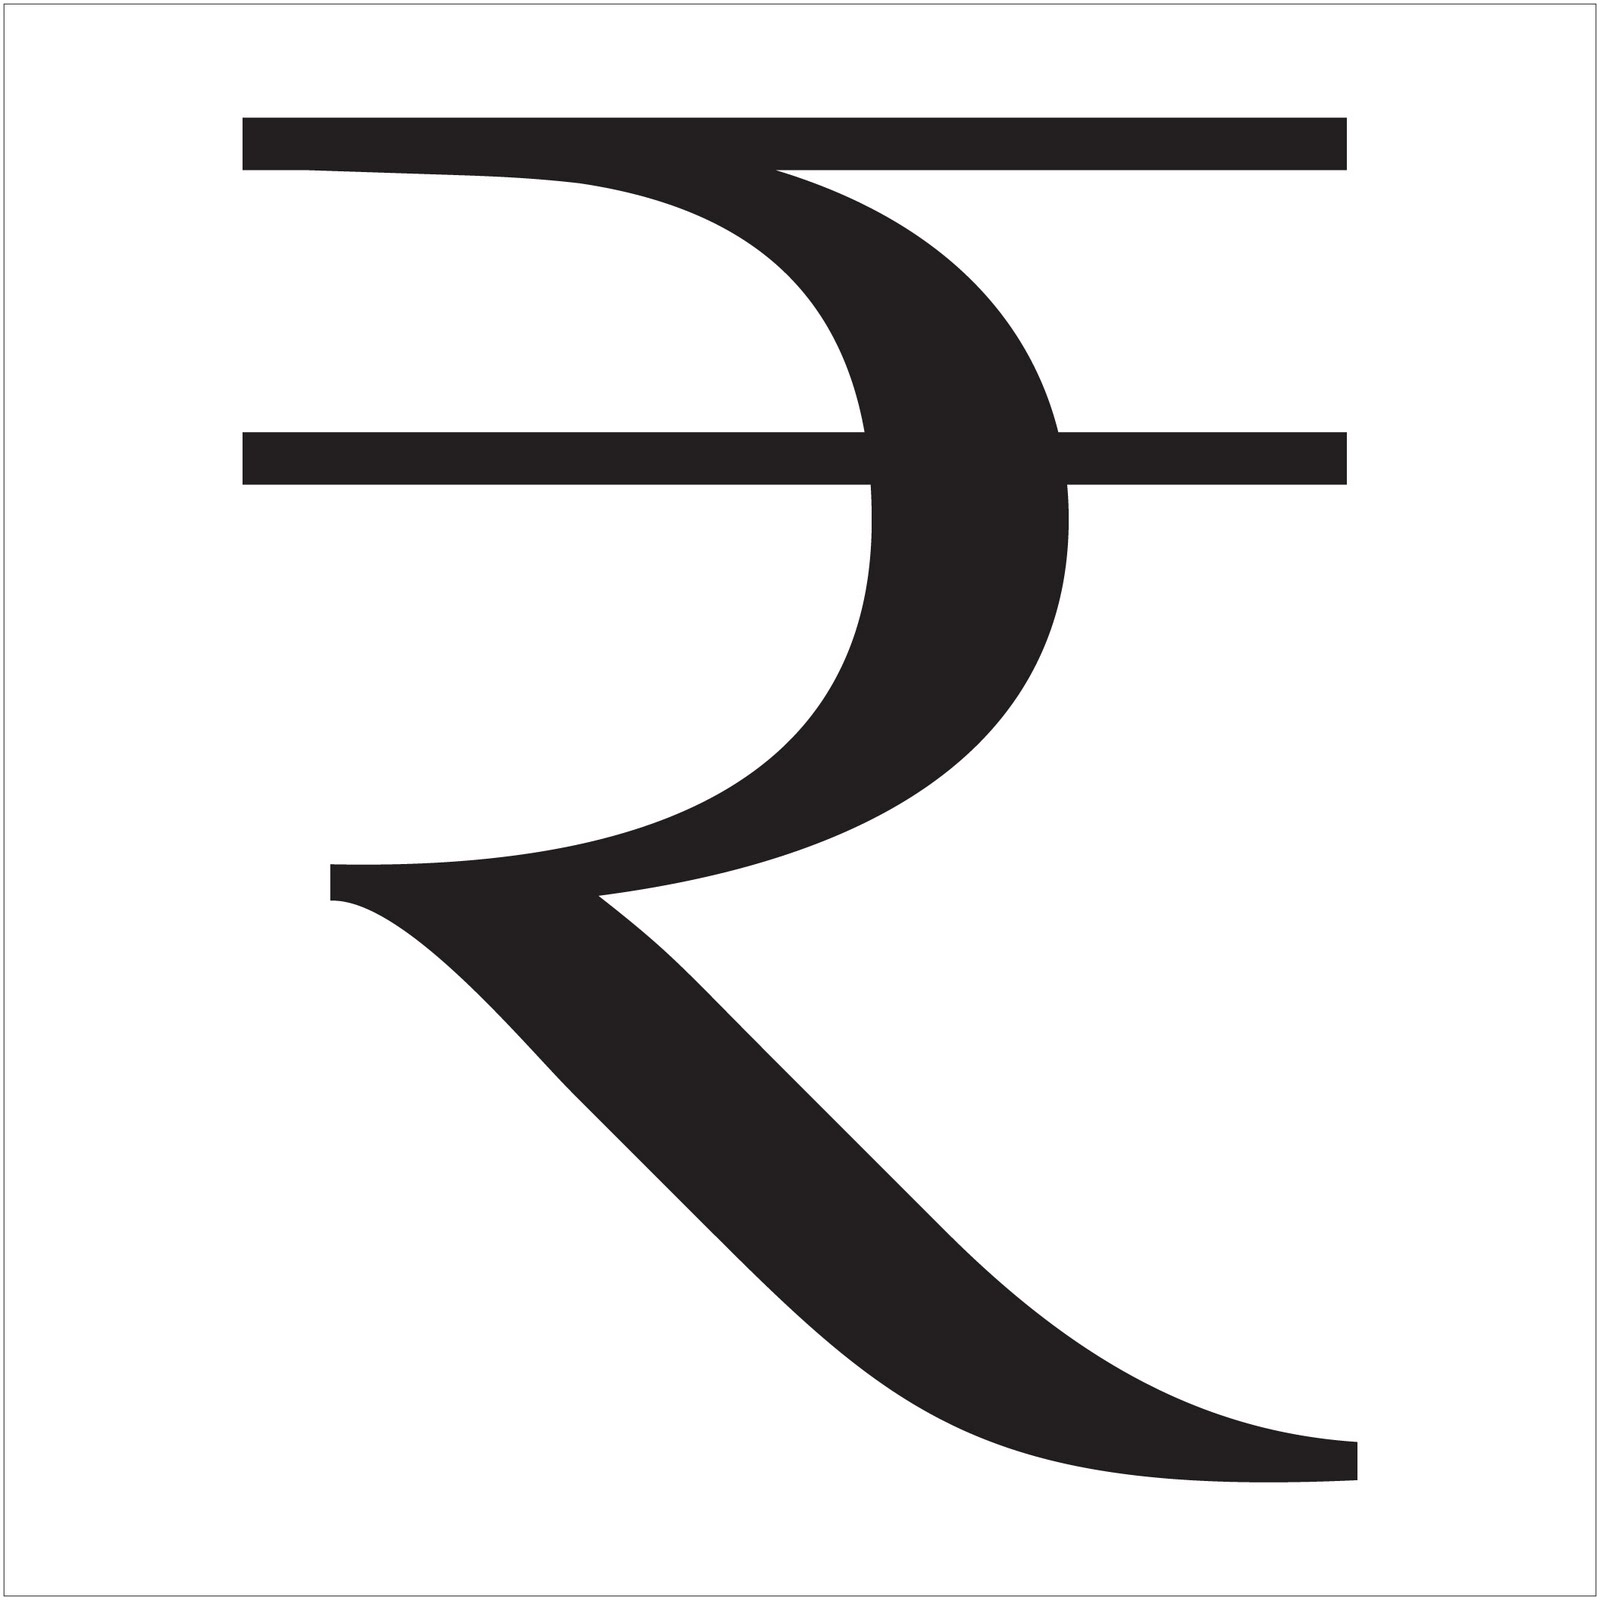 significance of the new rupee symbol By giving its approval for new rupee symbol, india joined a very elite group of the usa, uk, japan and european union to have its own currency symbol the new rupee symbol is a welcome addition to india's influential role on the global stage.